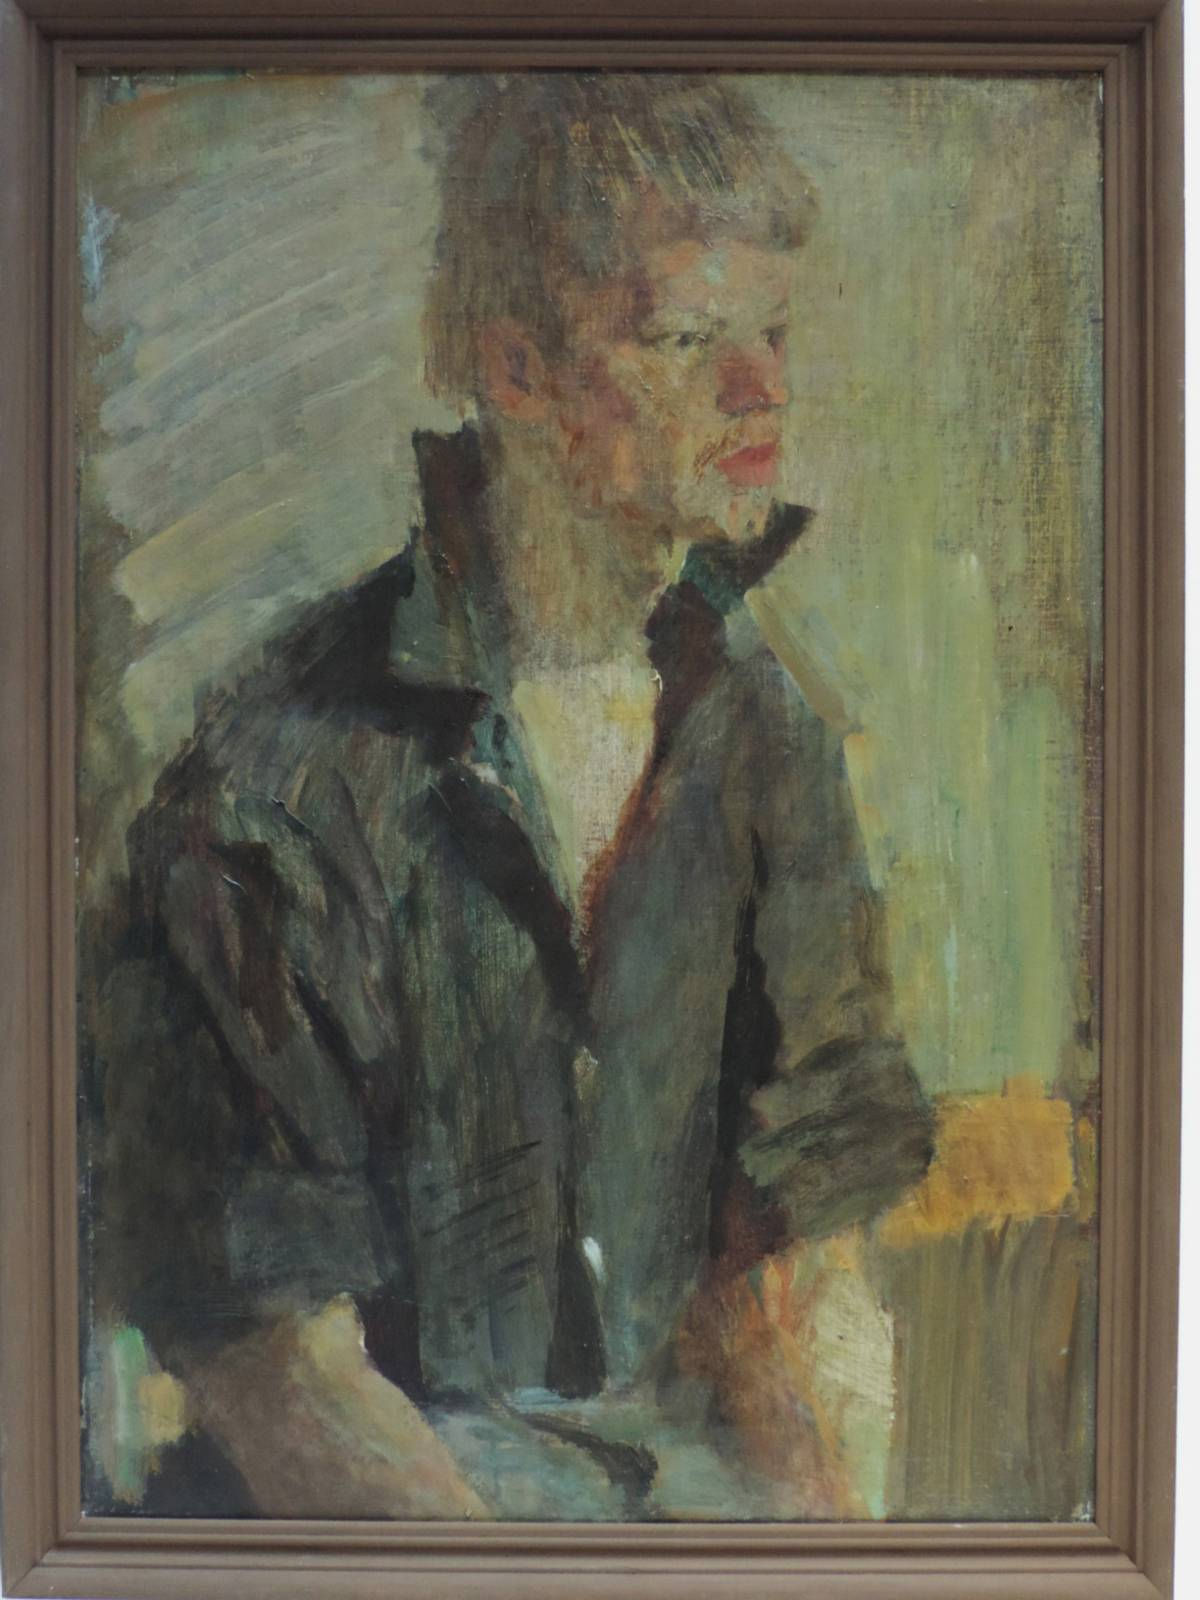 Juvenal Korovin (1914-1991). Honored Artist of Russia. Portrait of a young man. 49x70 cm, canvas on cardboard, oil. 1963